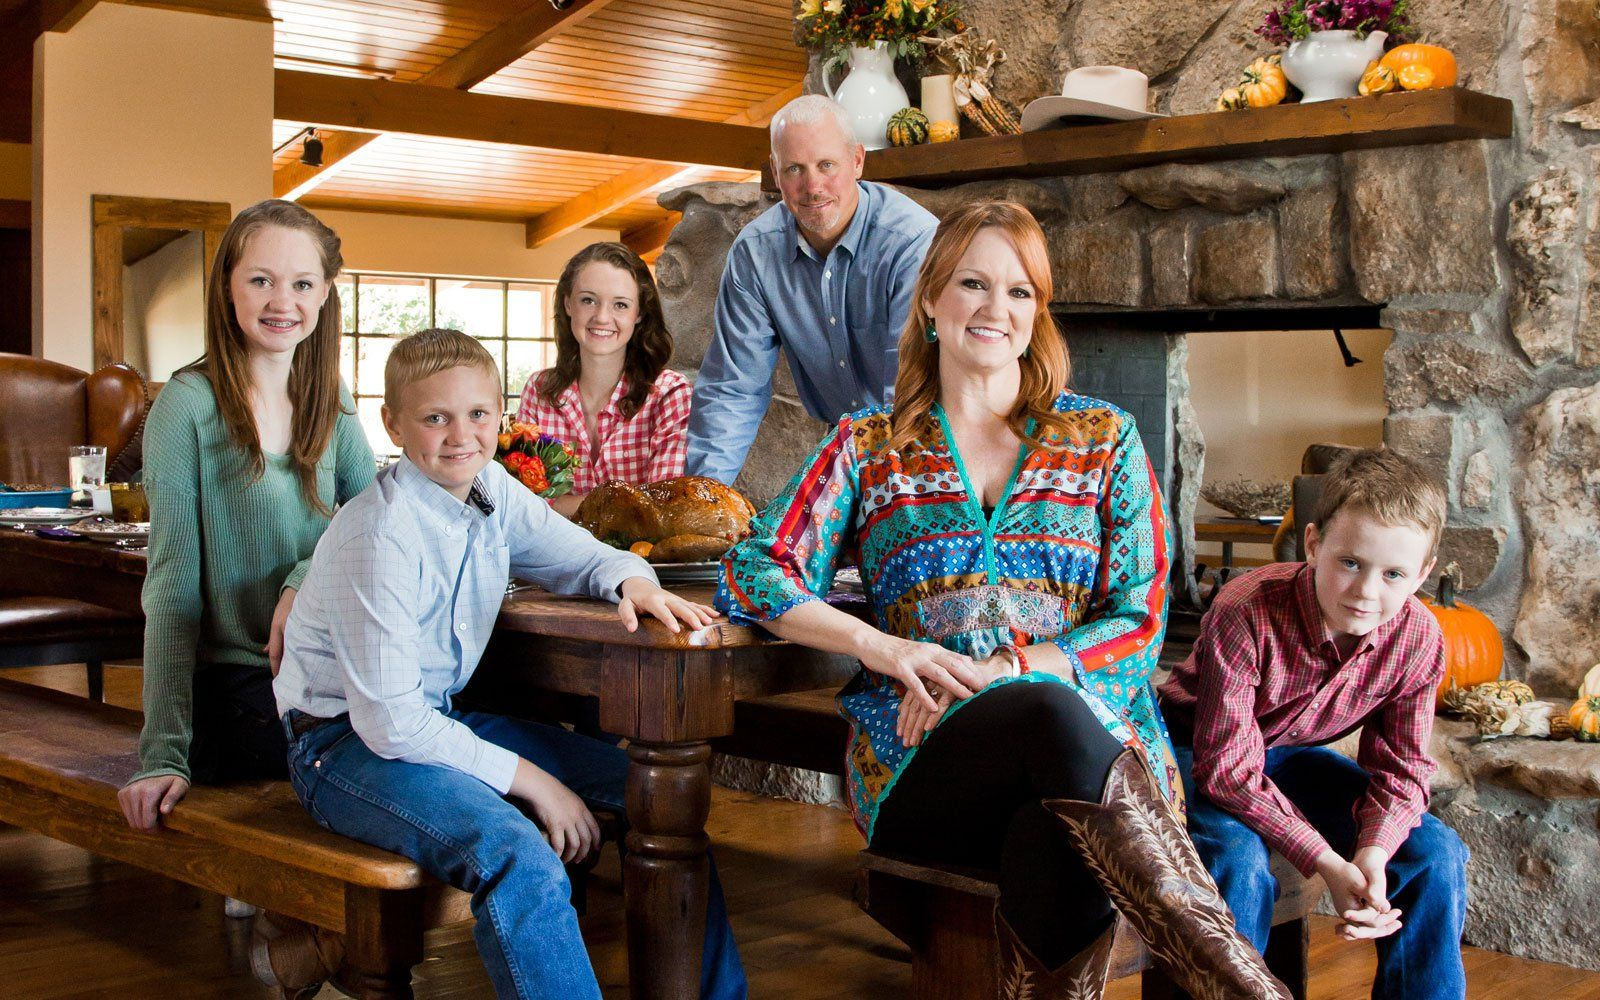 Photos Ree Drummond S Ranch Thanksgiving Ree Drummond Ranch Pioneer Woman Ree Drummond Pioneer Woman